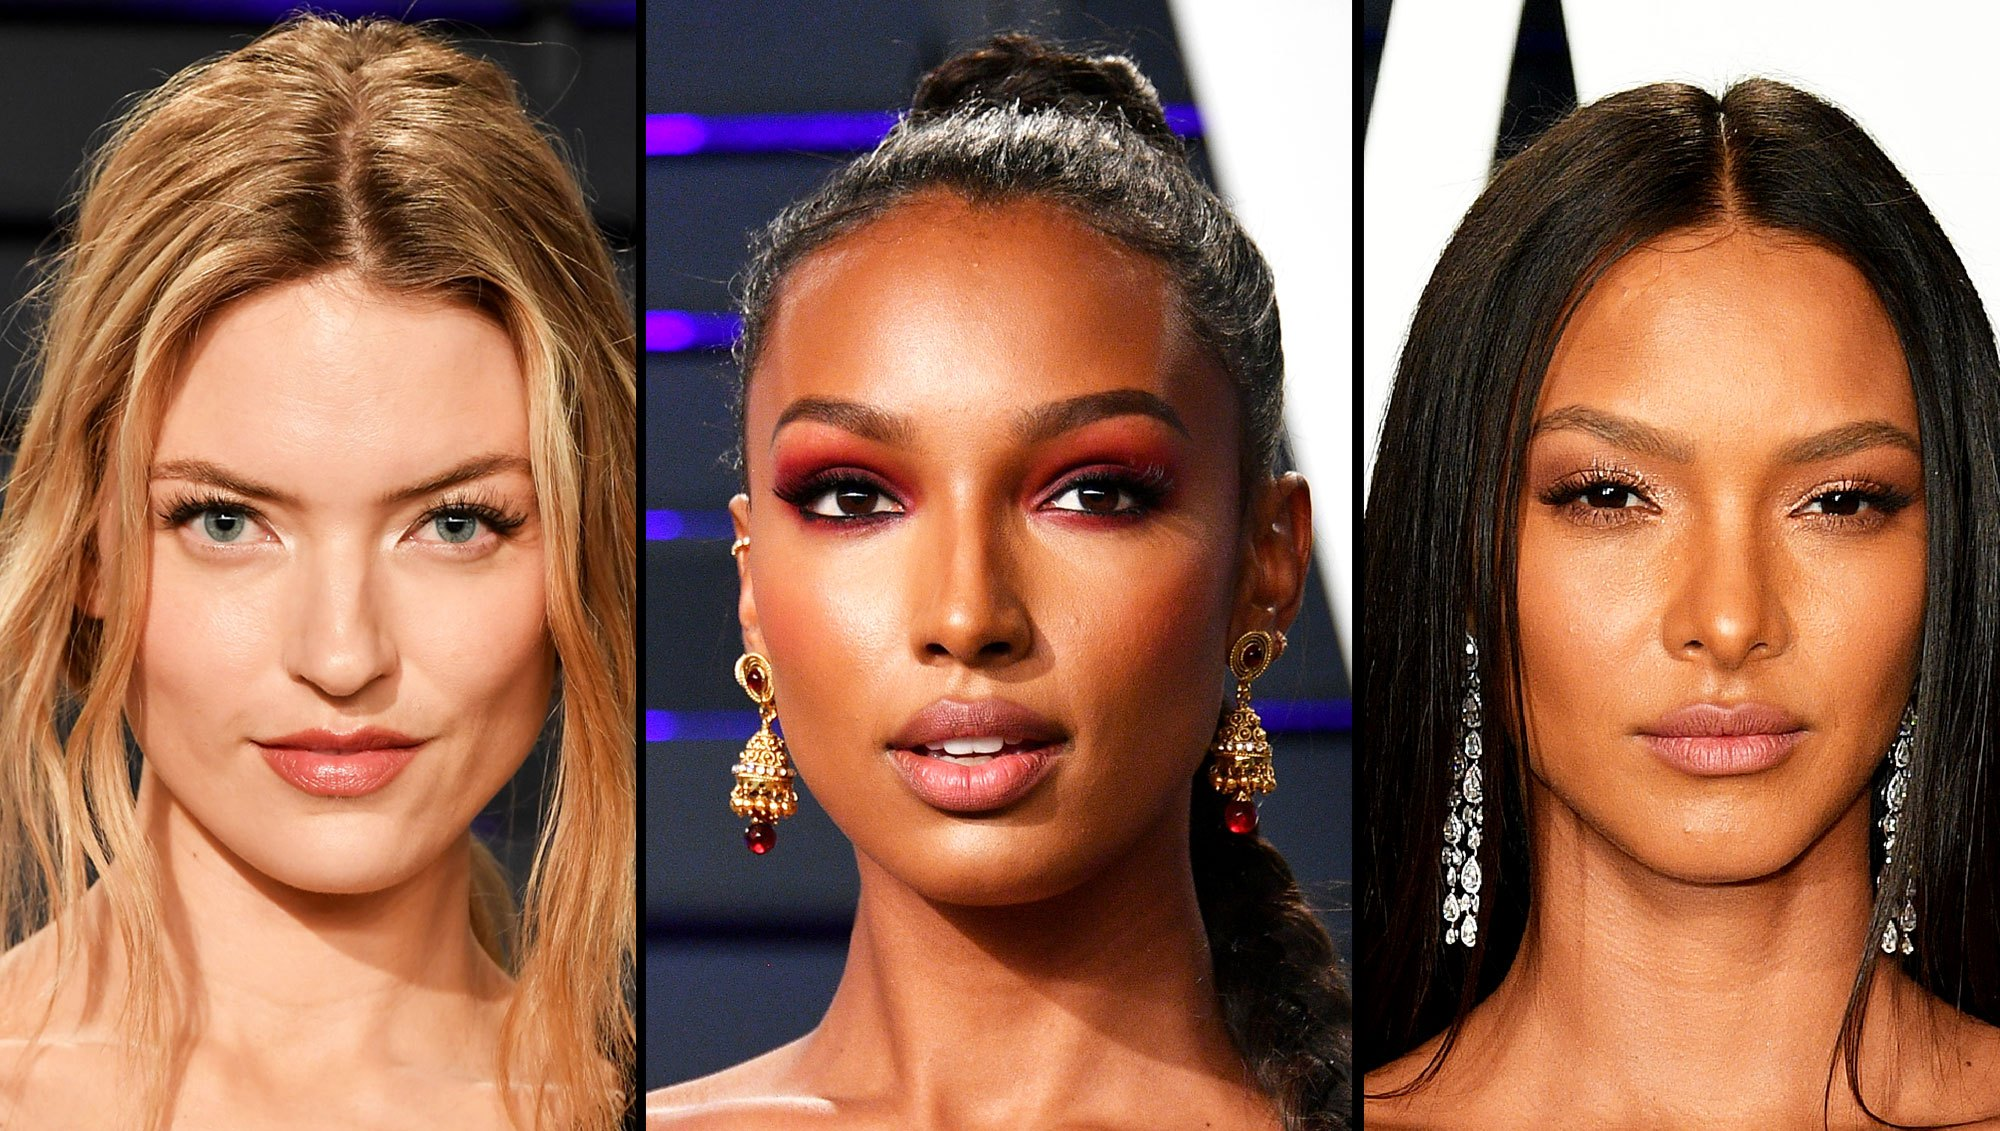 See How a Victoria Secret Model Gets Ready for a Red Carpet